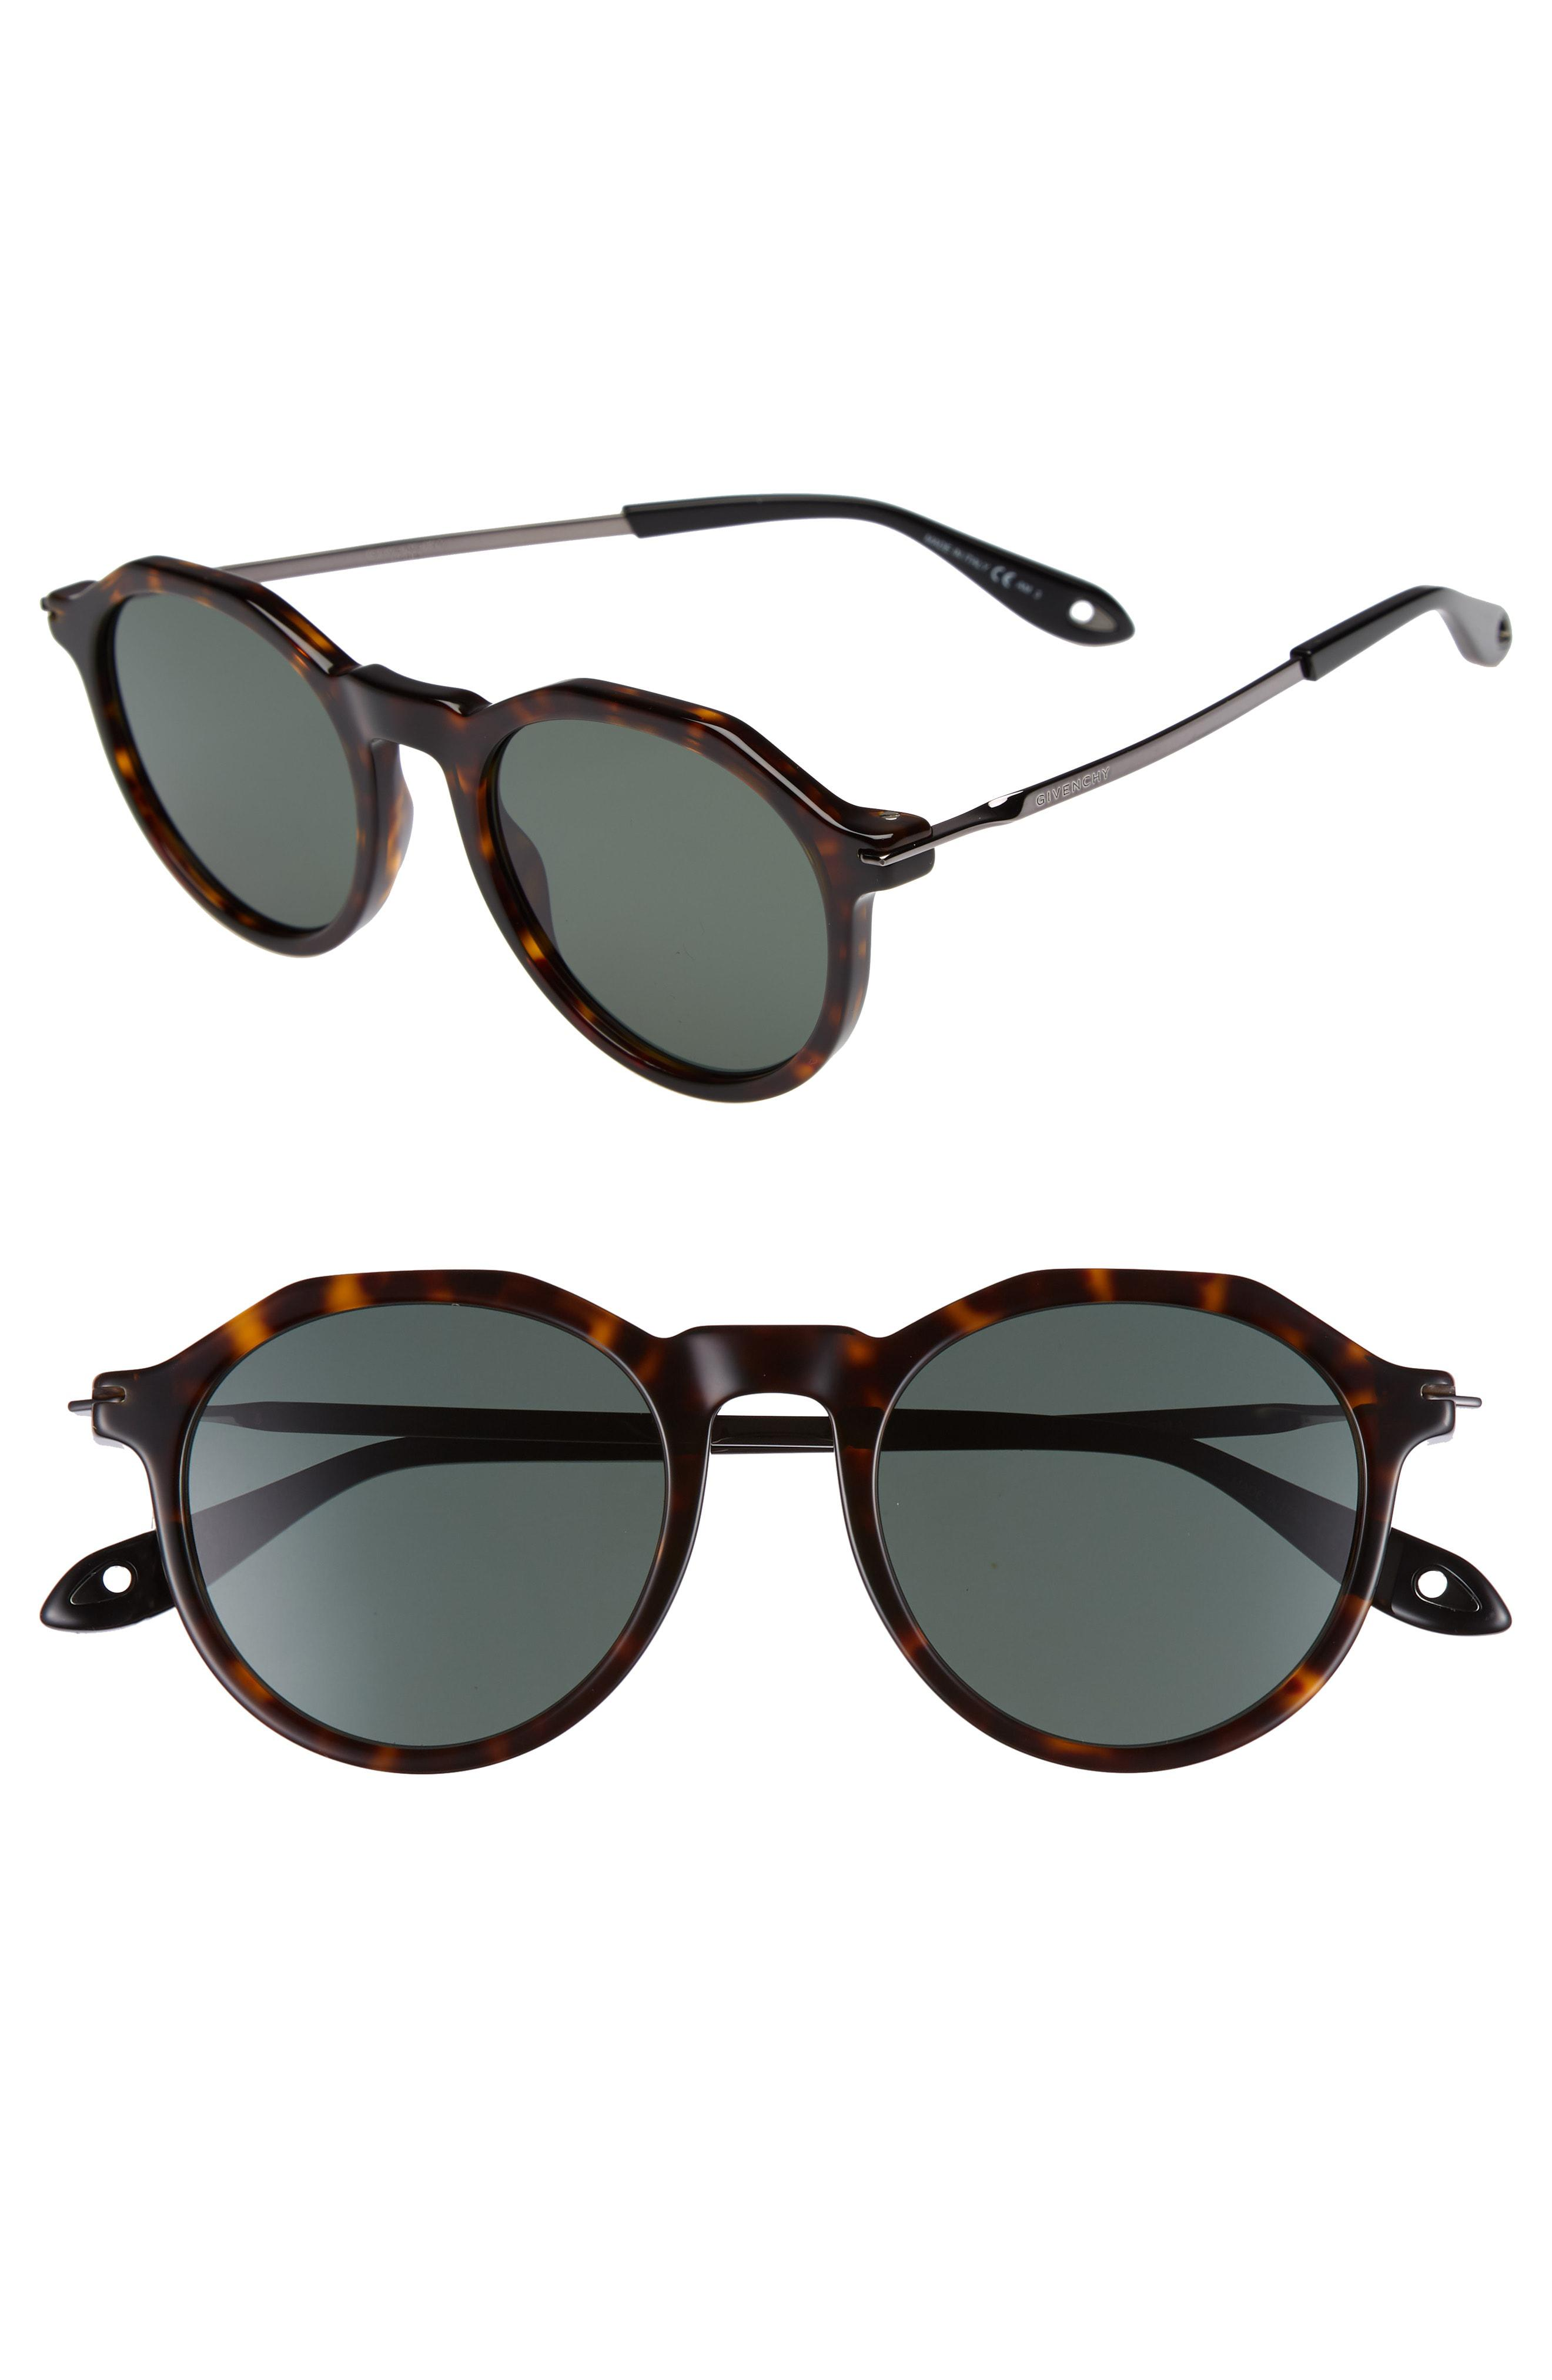 792b4a702c3 Lyst - Givenchy 51mm Round Sunglasses - in Black